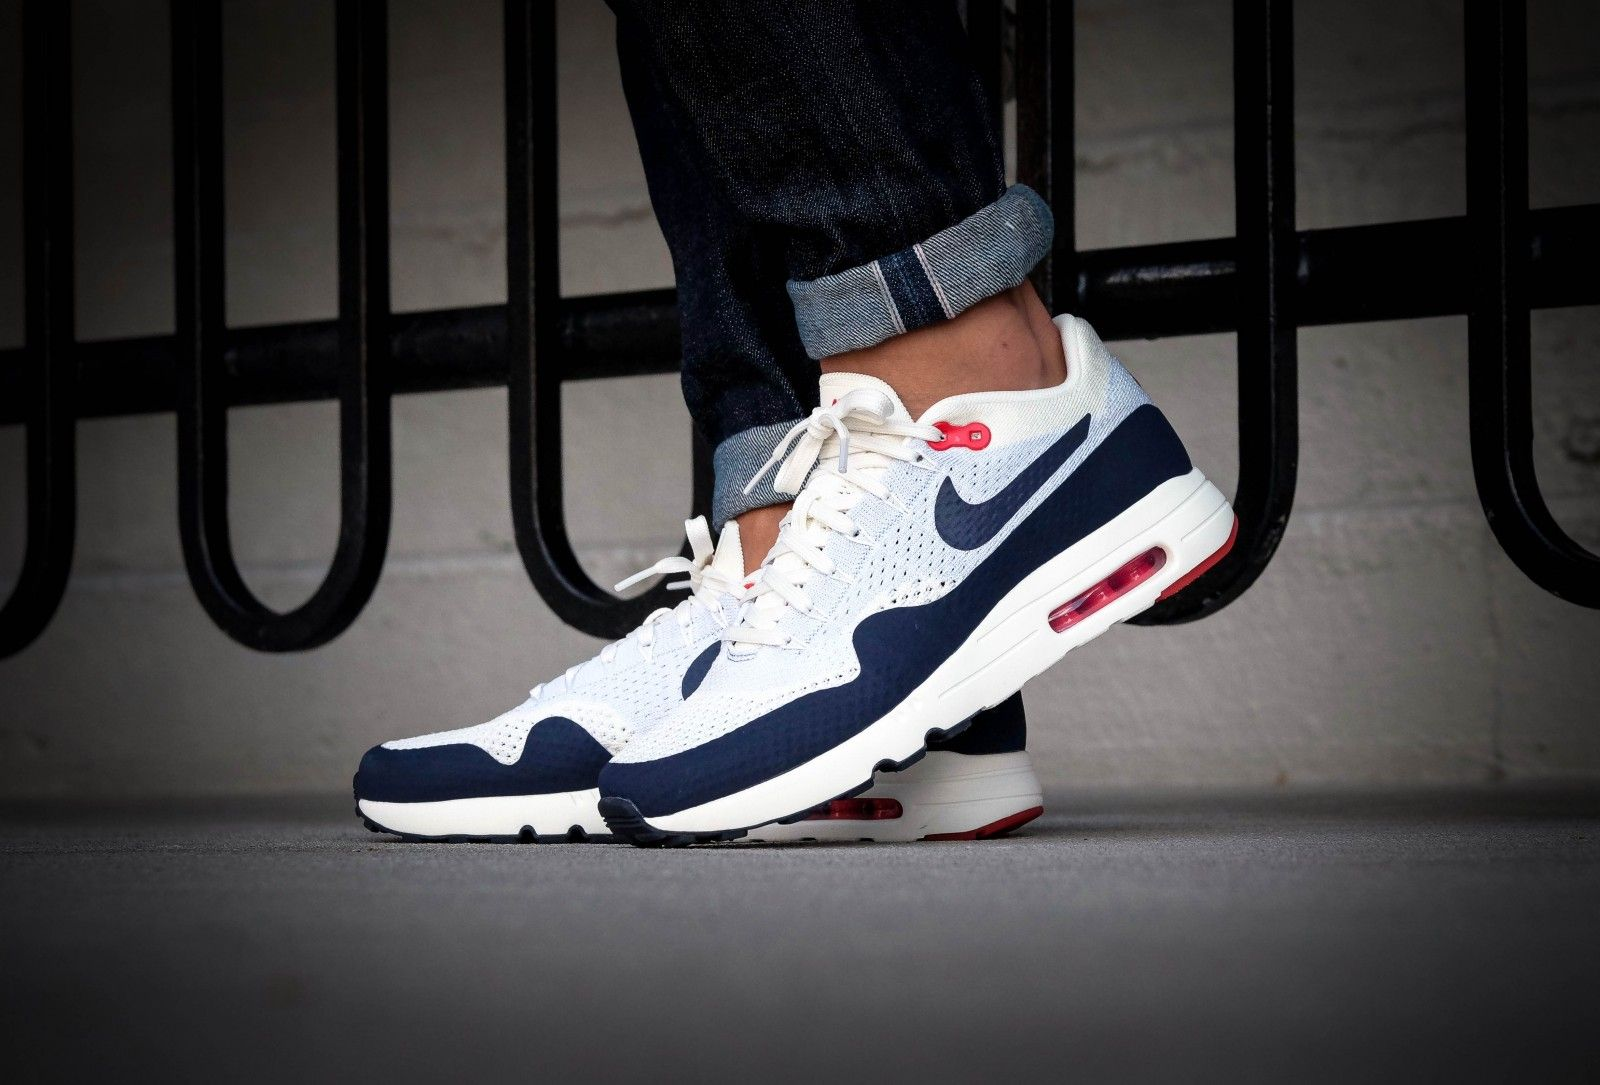 b5c86cc4d6 Nike Air Max 1 Ultra 2.0 Flyknit Sail/Obsidian-Wolf Grey-University Red